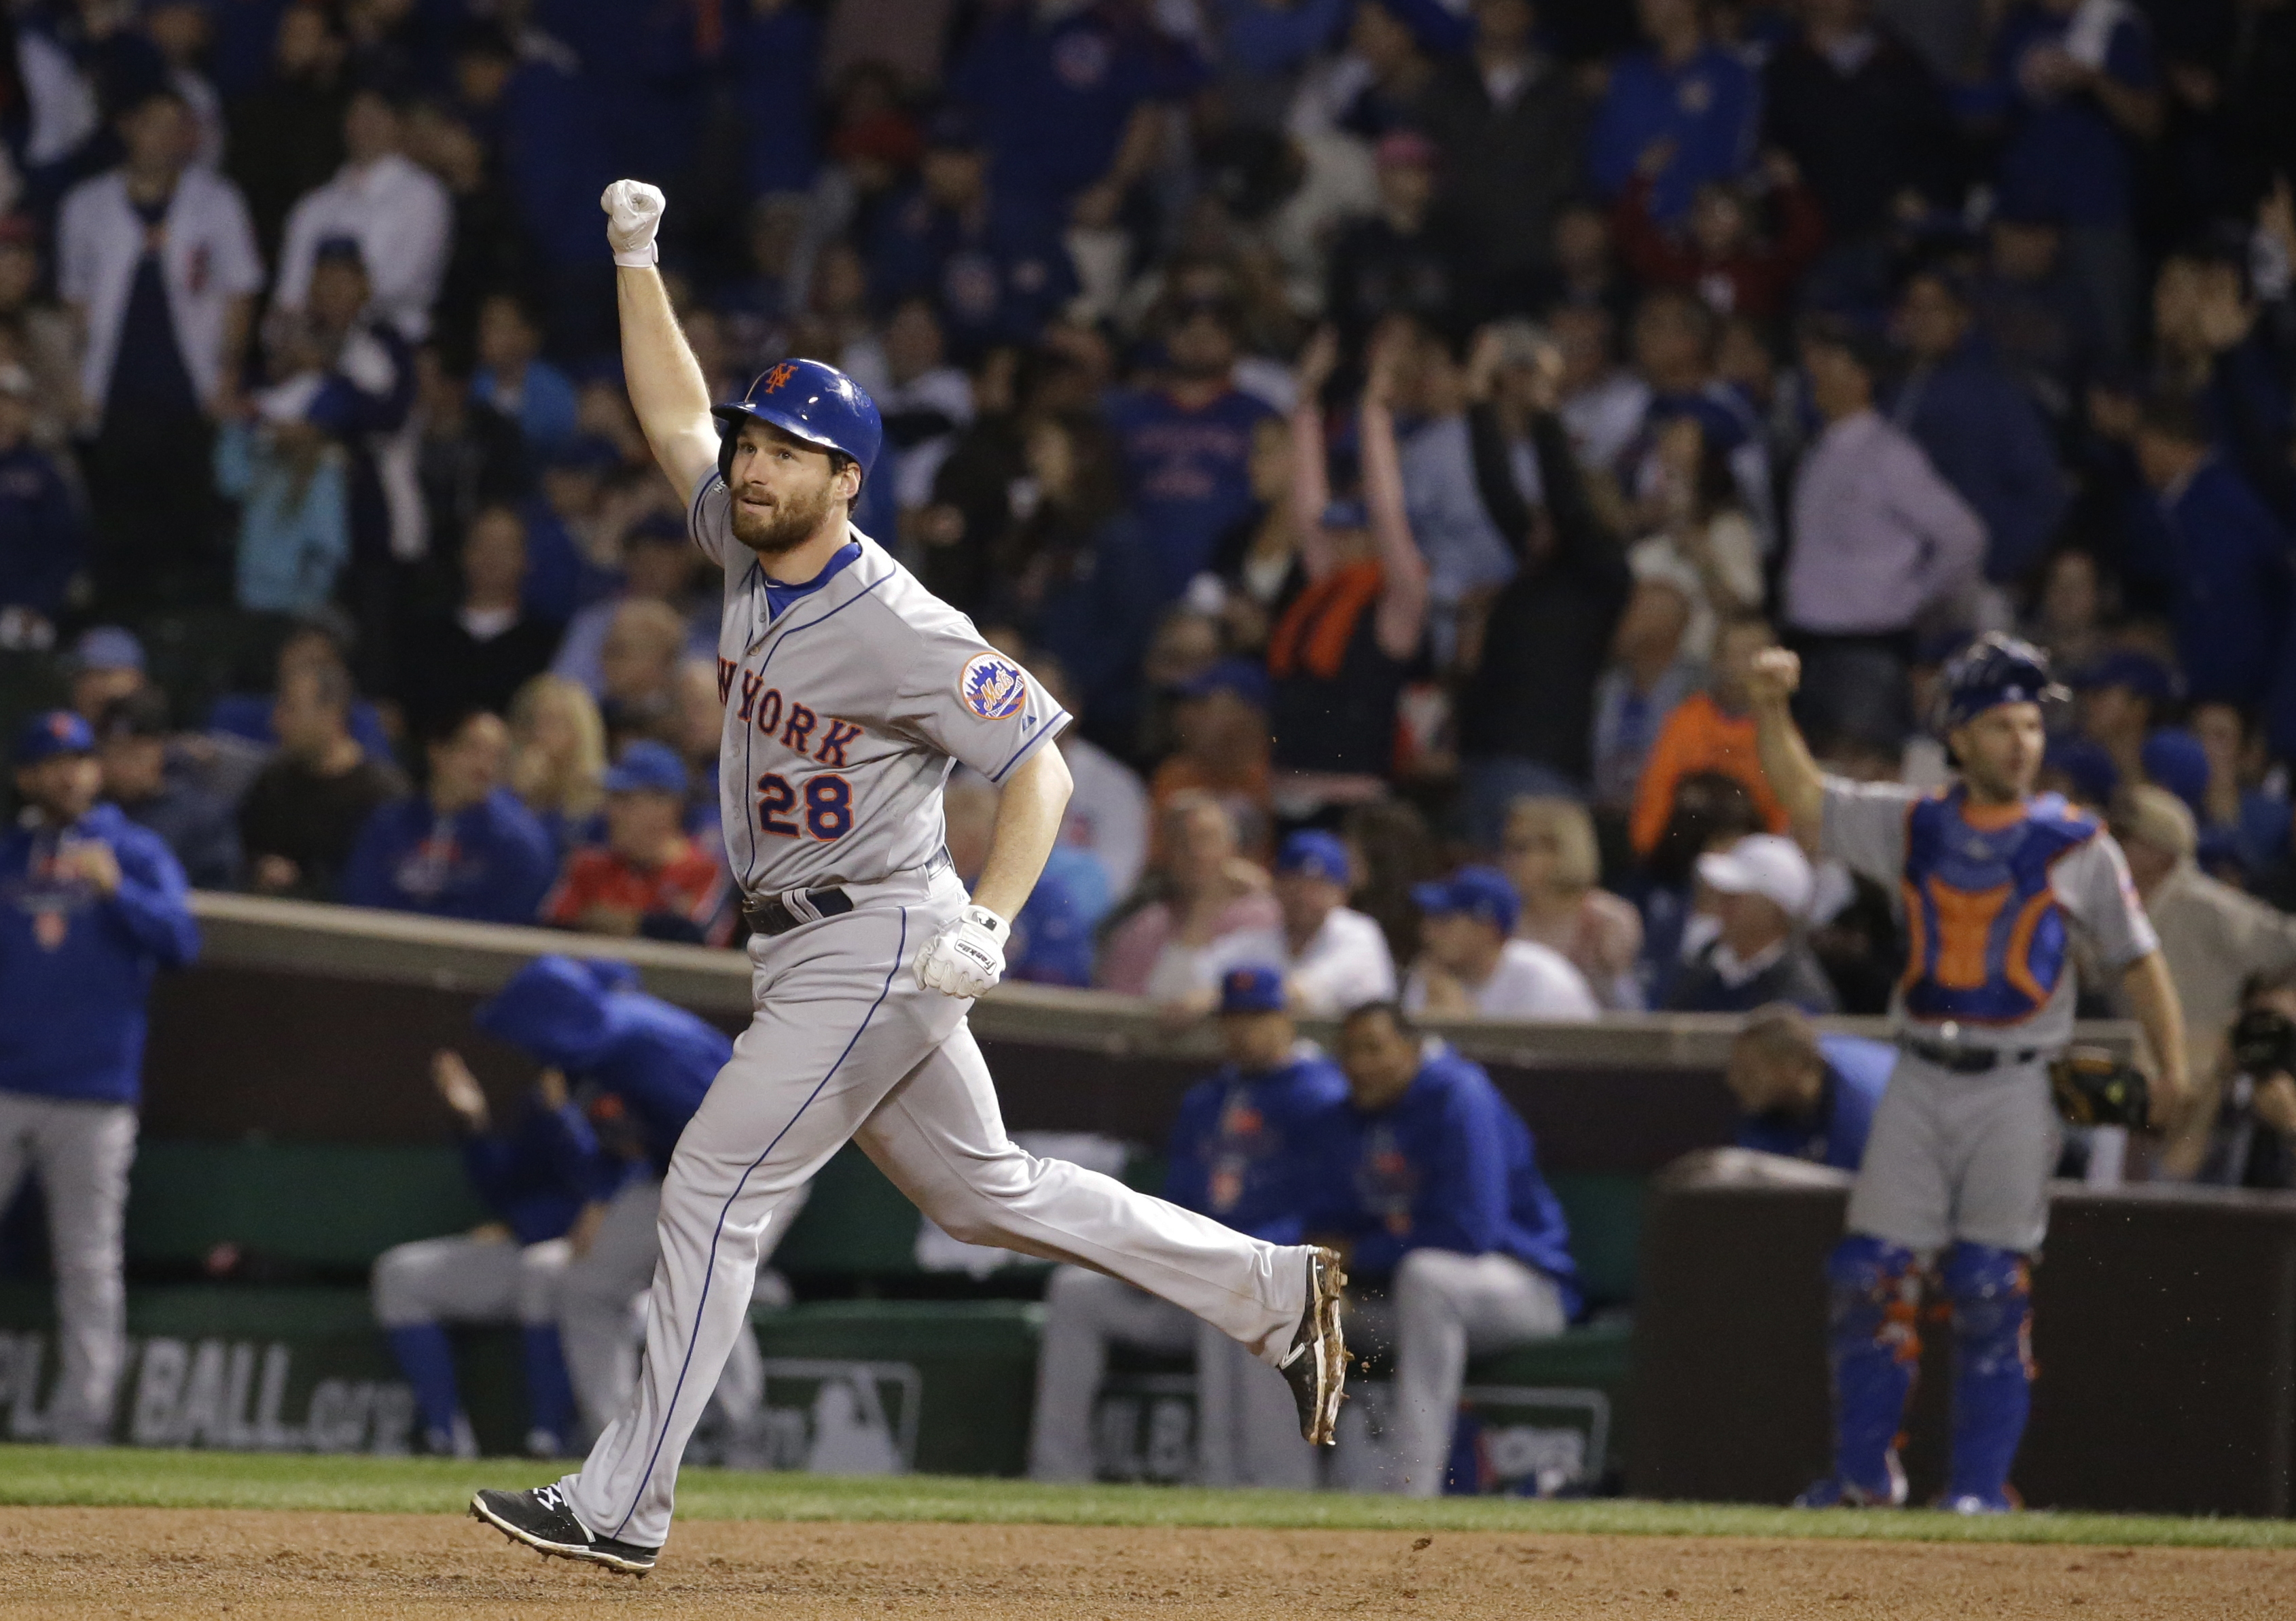 New York Mets' Daniel Murphy celebrates after hitting a two-run home run during the eighth inning of Game 4 of the National League baseball championship series against the Chicago Cubs Wednesday, Oct. 21, 2015, in Chicago. (AP Photo/Nam Y. Huh)